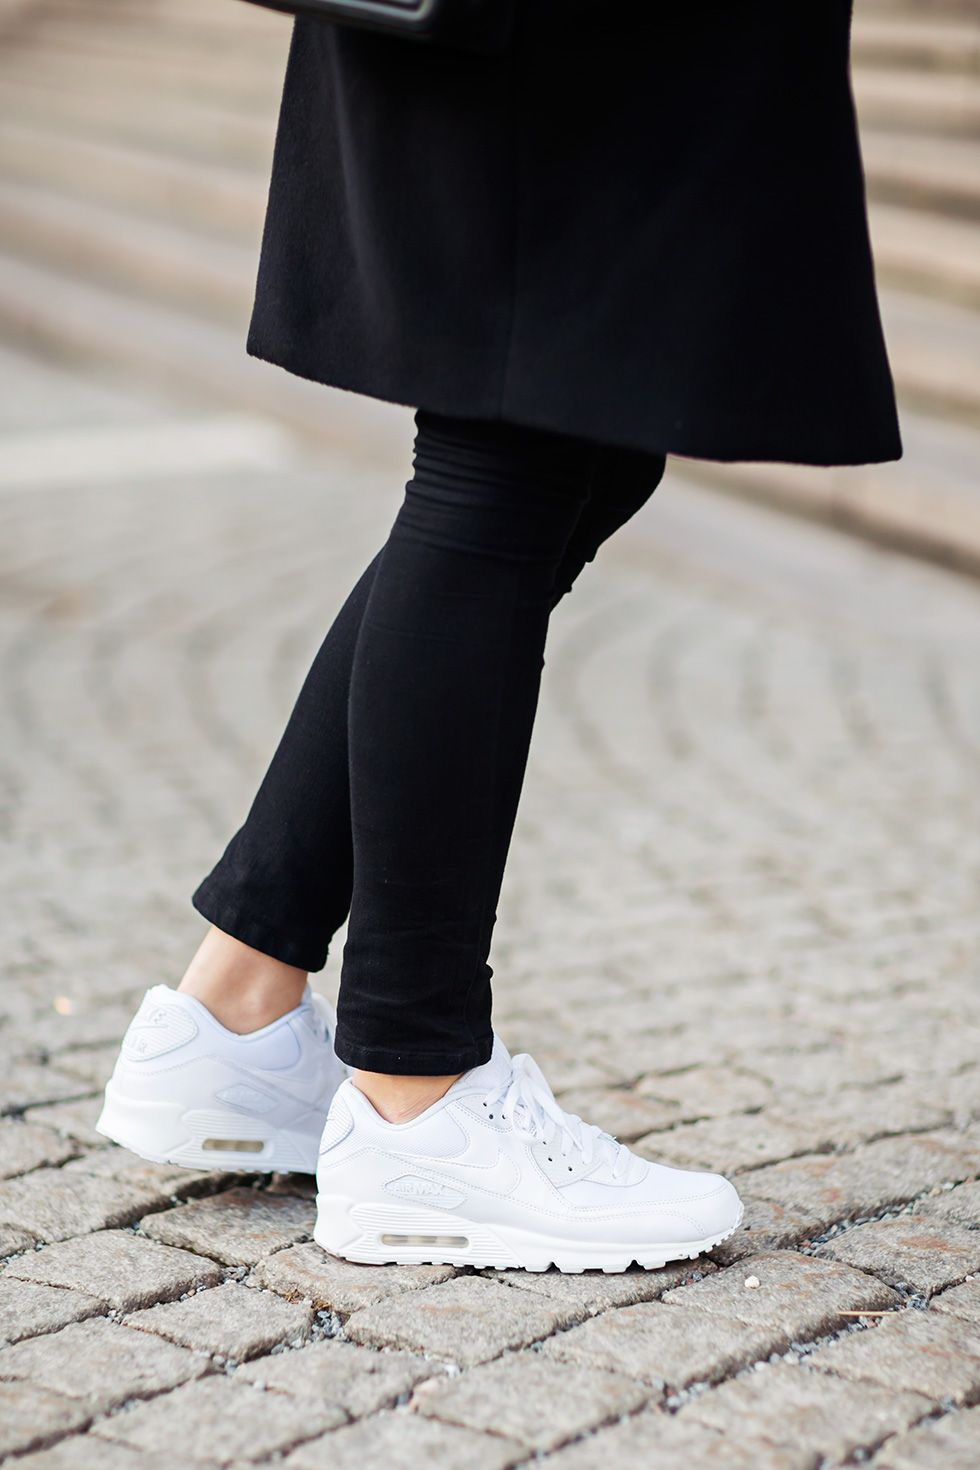 Black cuffed jeans u0026 white Nike sneakers #style #fashion #kicks | Style Inspiration | Pinterest ...